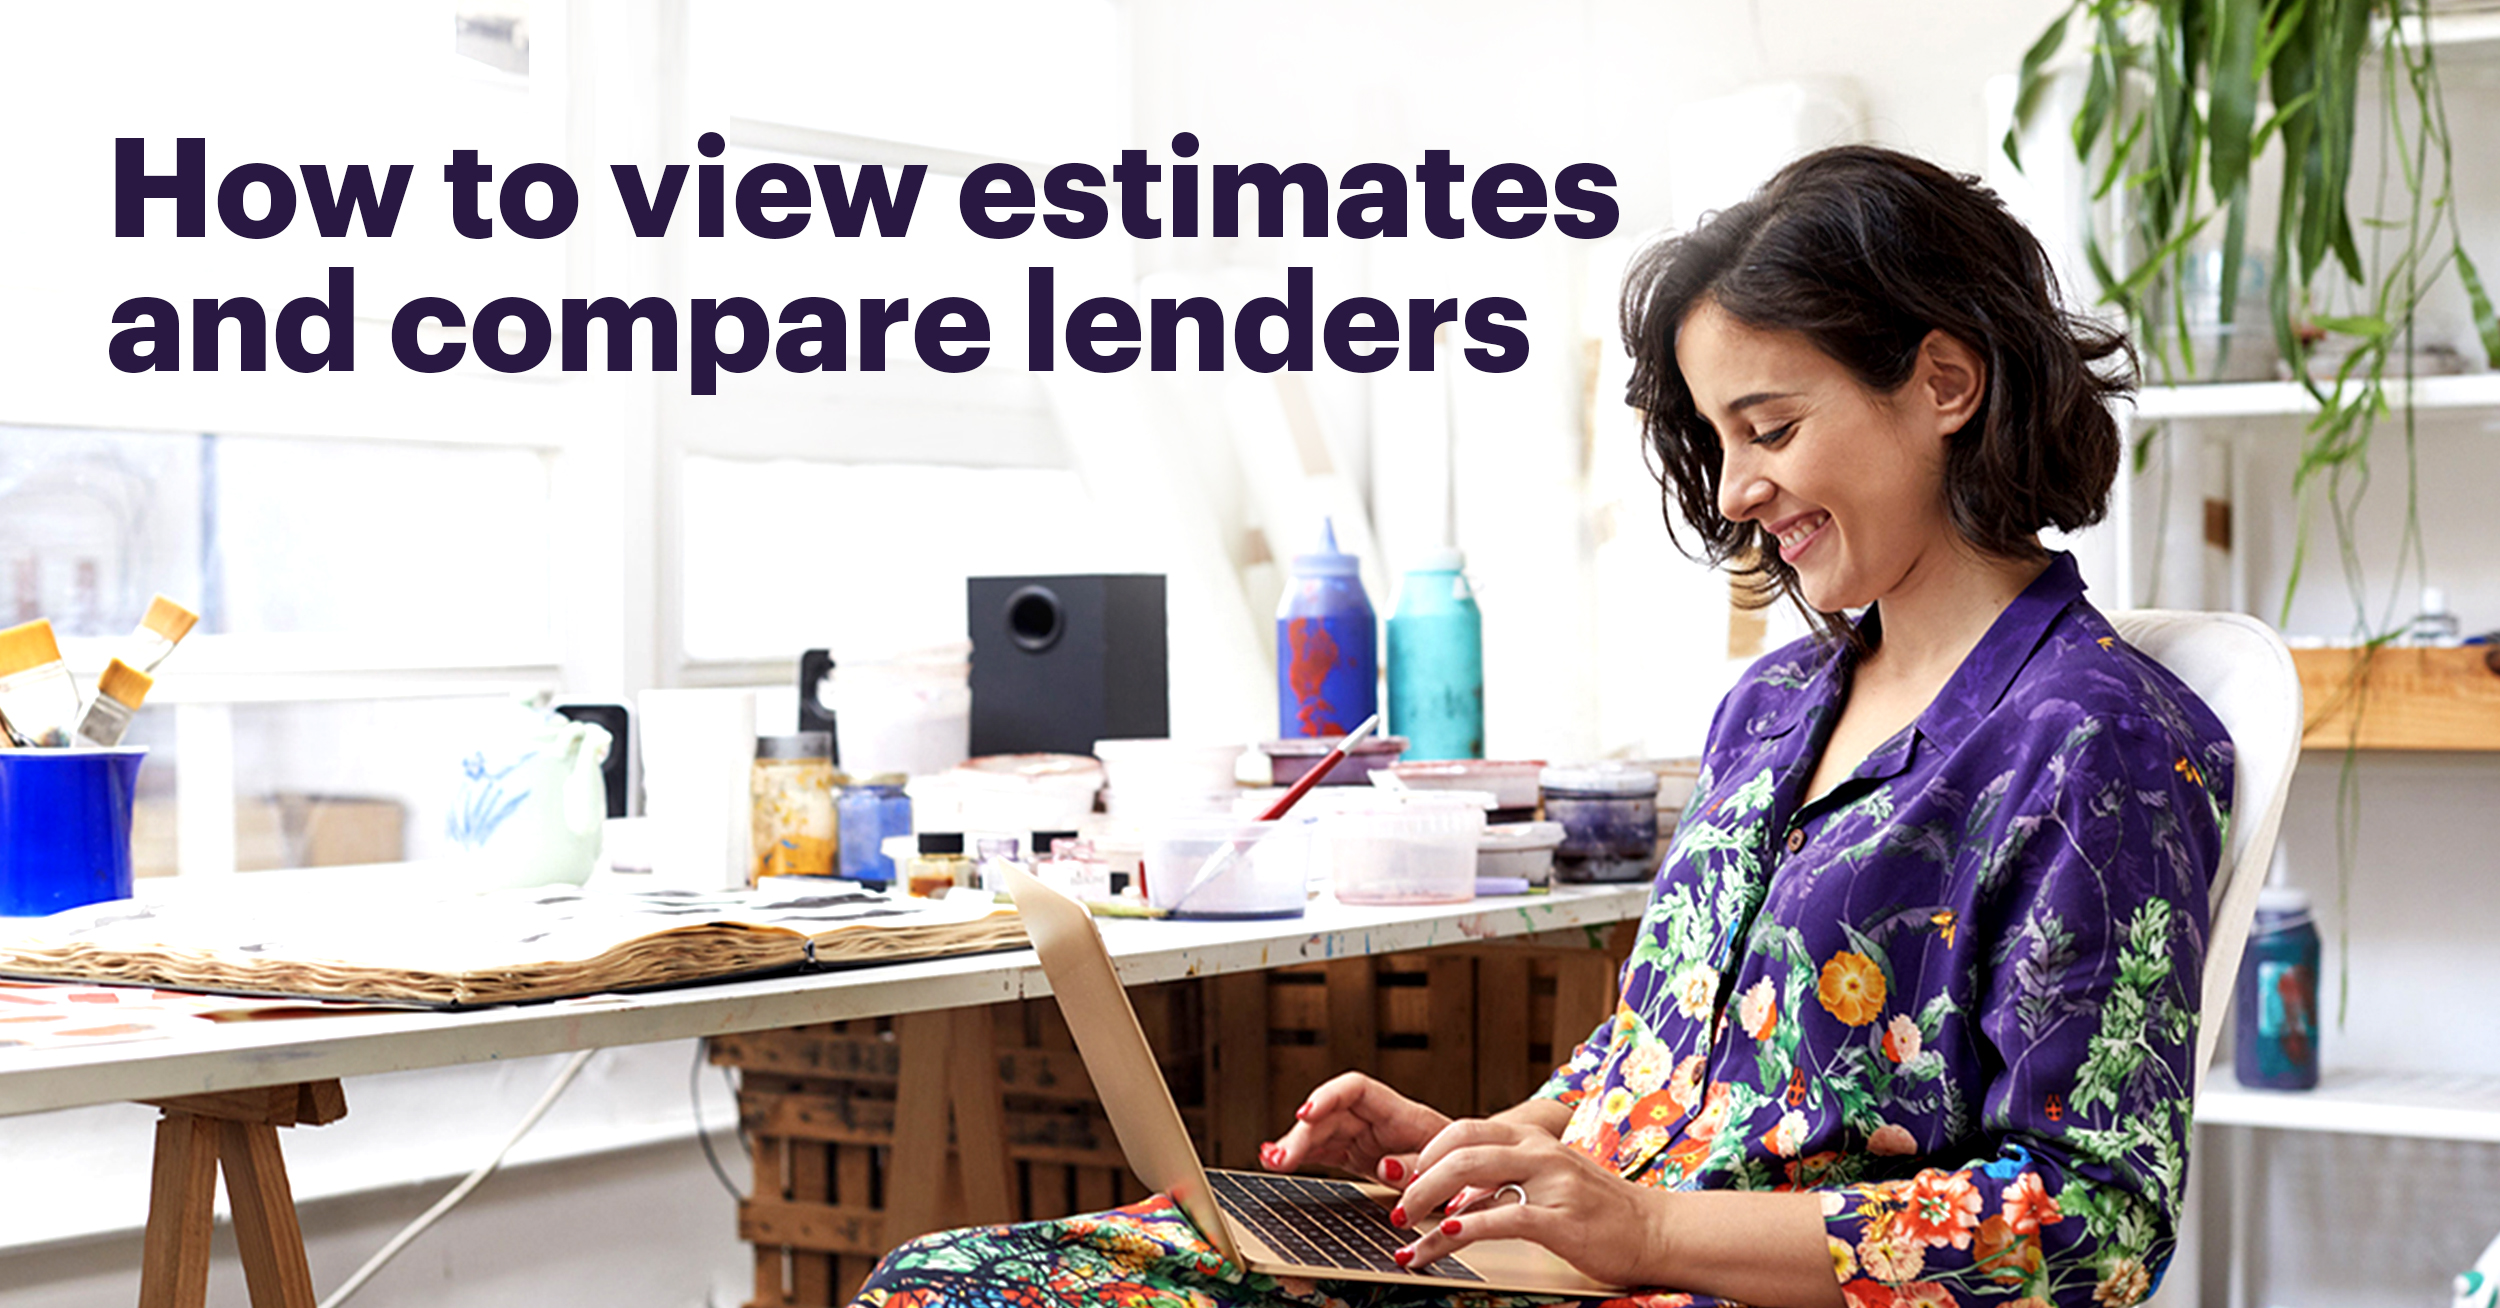 Woman with Laptop and Text that States How to View Estimates and Compare Lenders